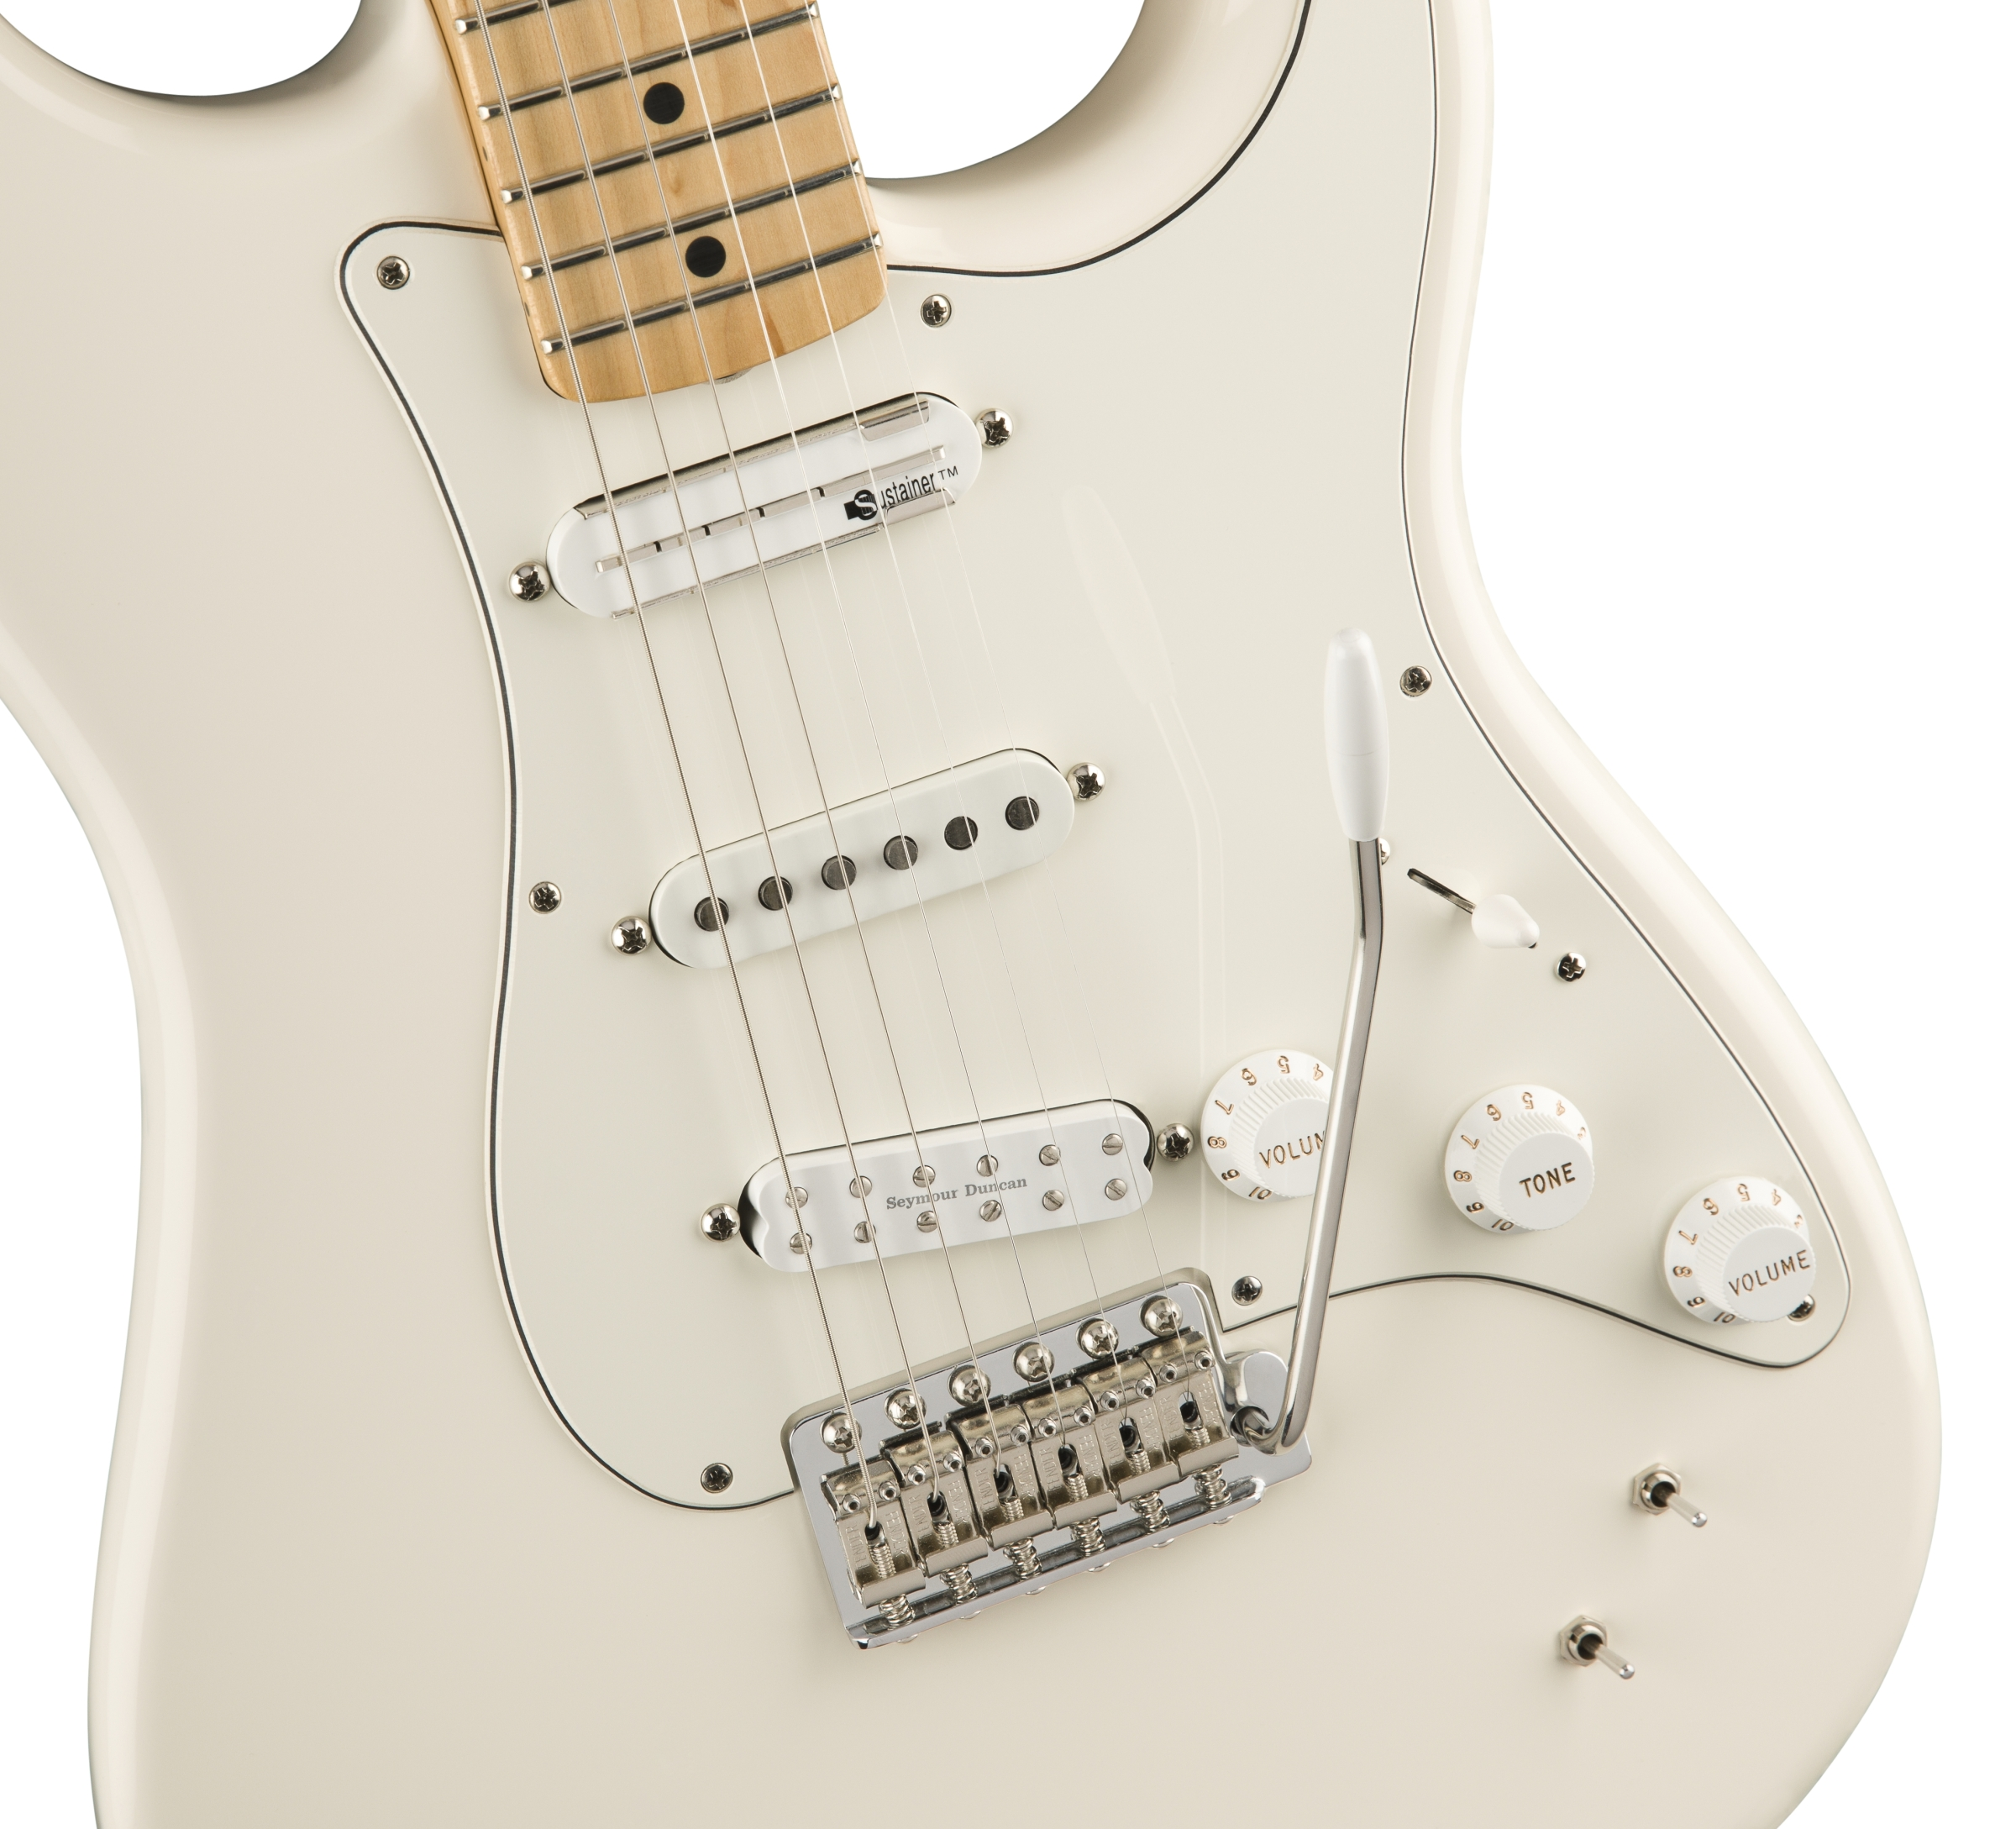 Fender Eob Sustainer Stratocaster Electric Guitars Seymor Duncan Guitar Pickups Wiring Diagram 2 Tap To Expand